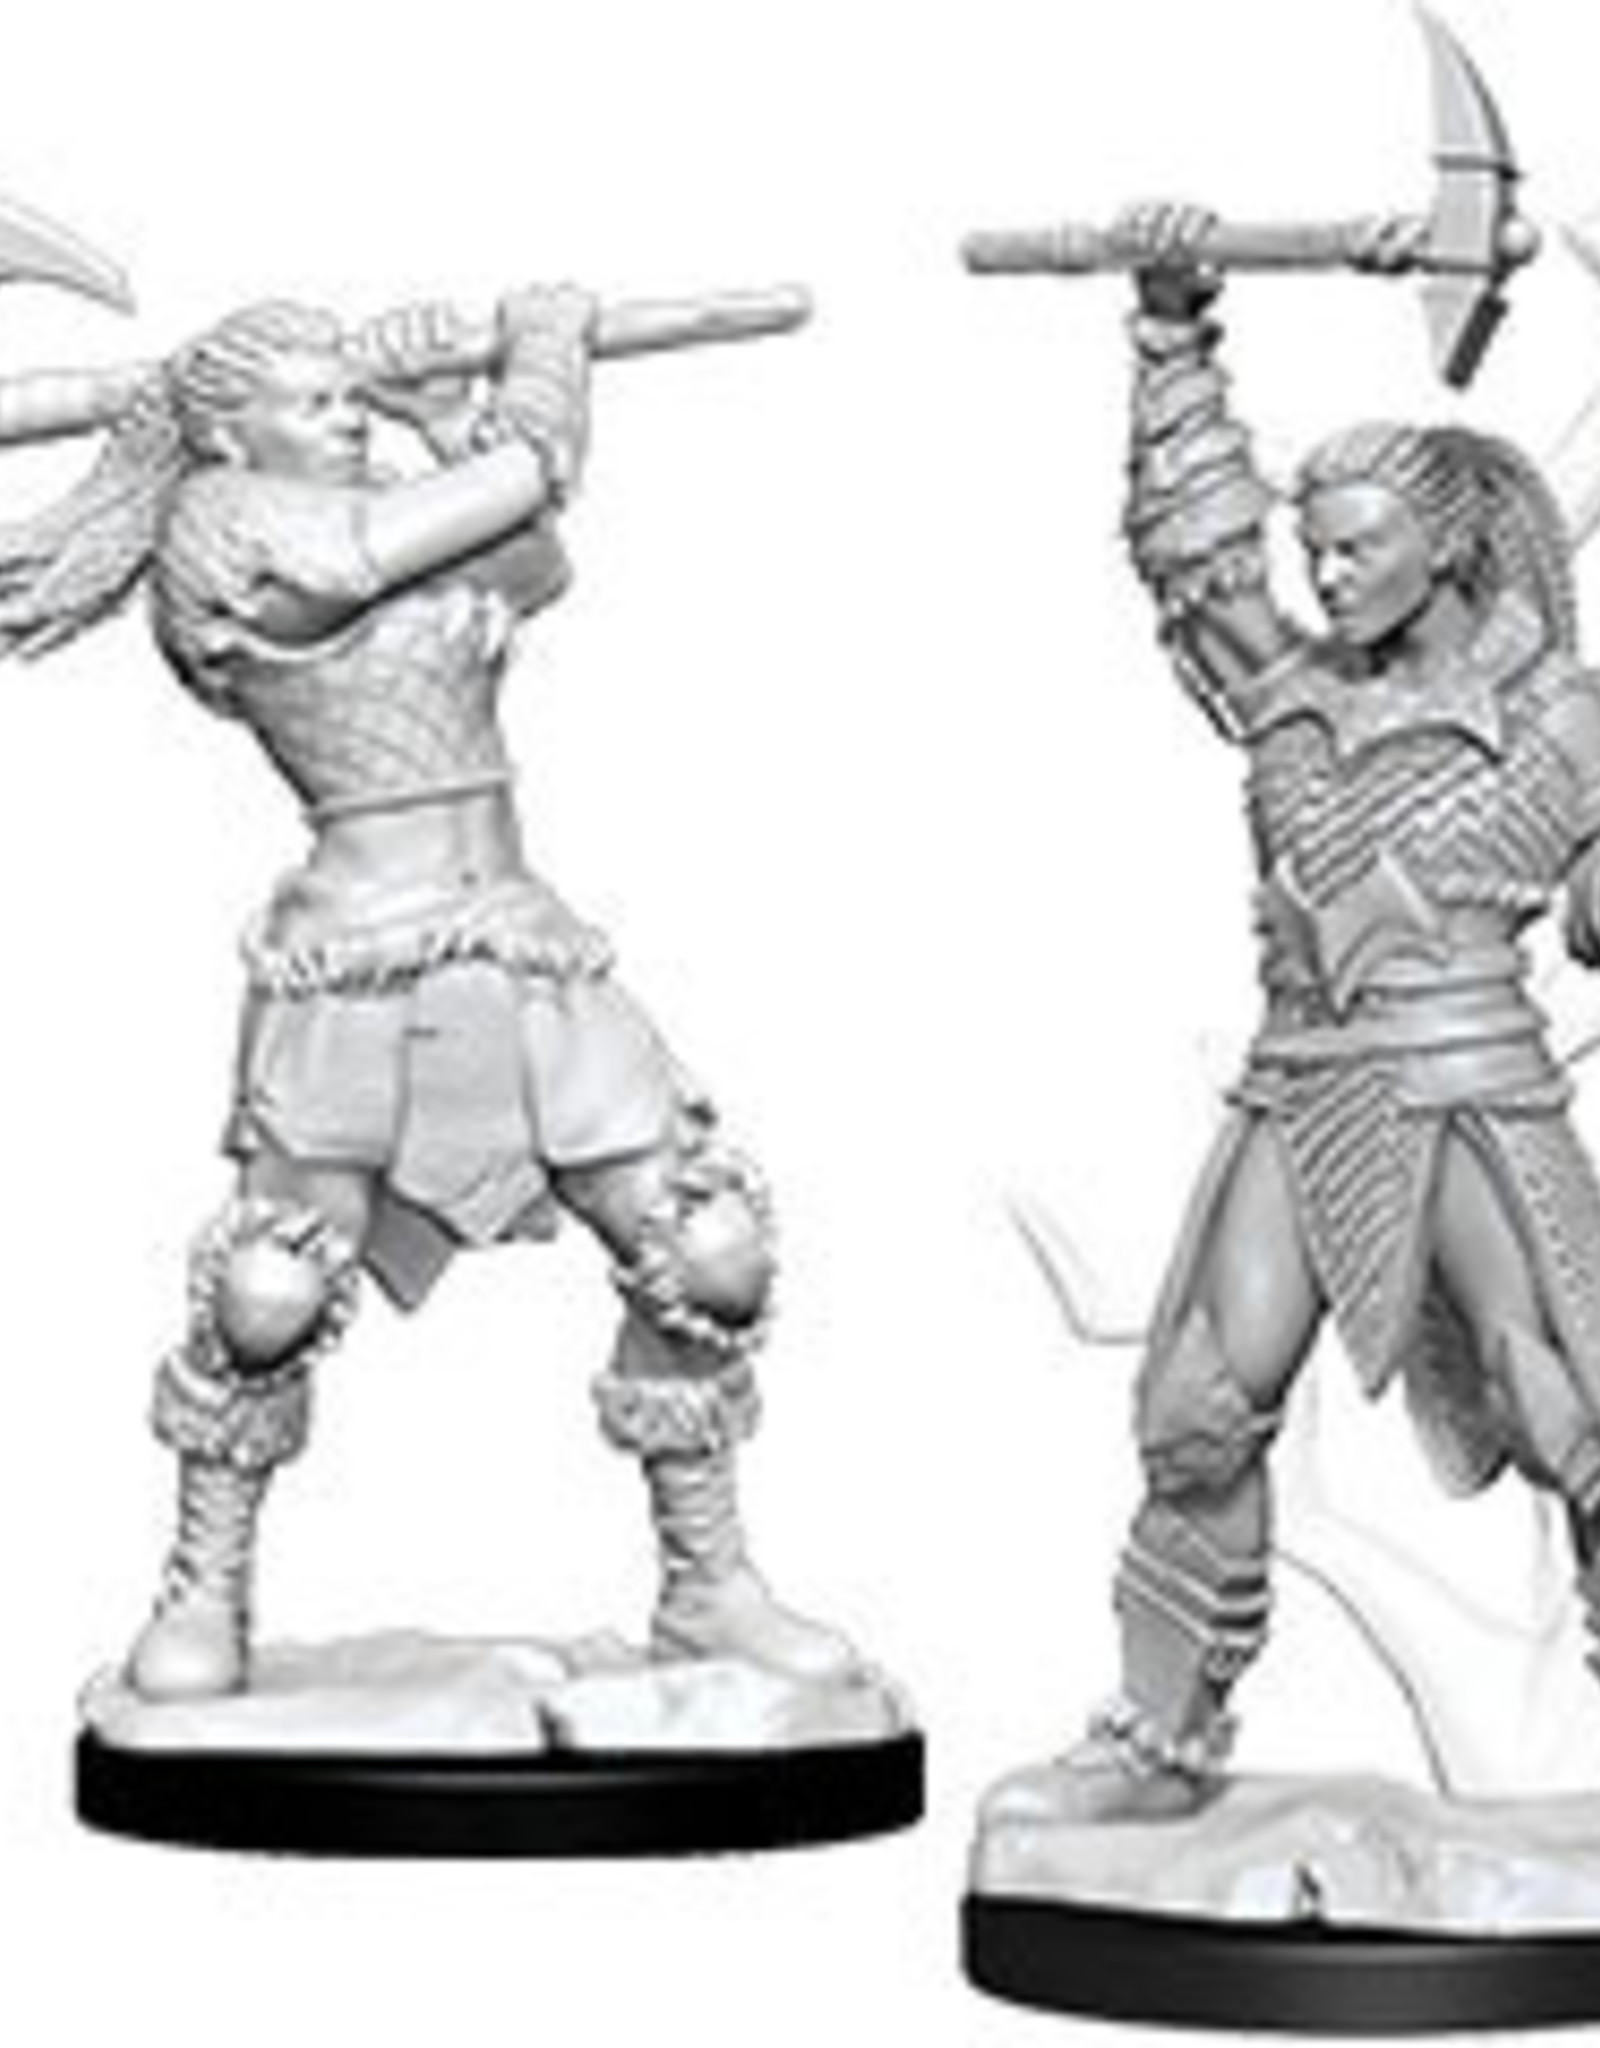 WizKids Dungeons & Dragons Nolzur's Marvelous Miniatures: Female Goliath Barbarian